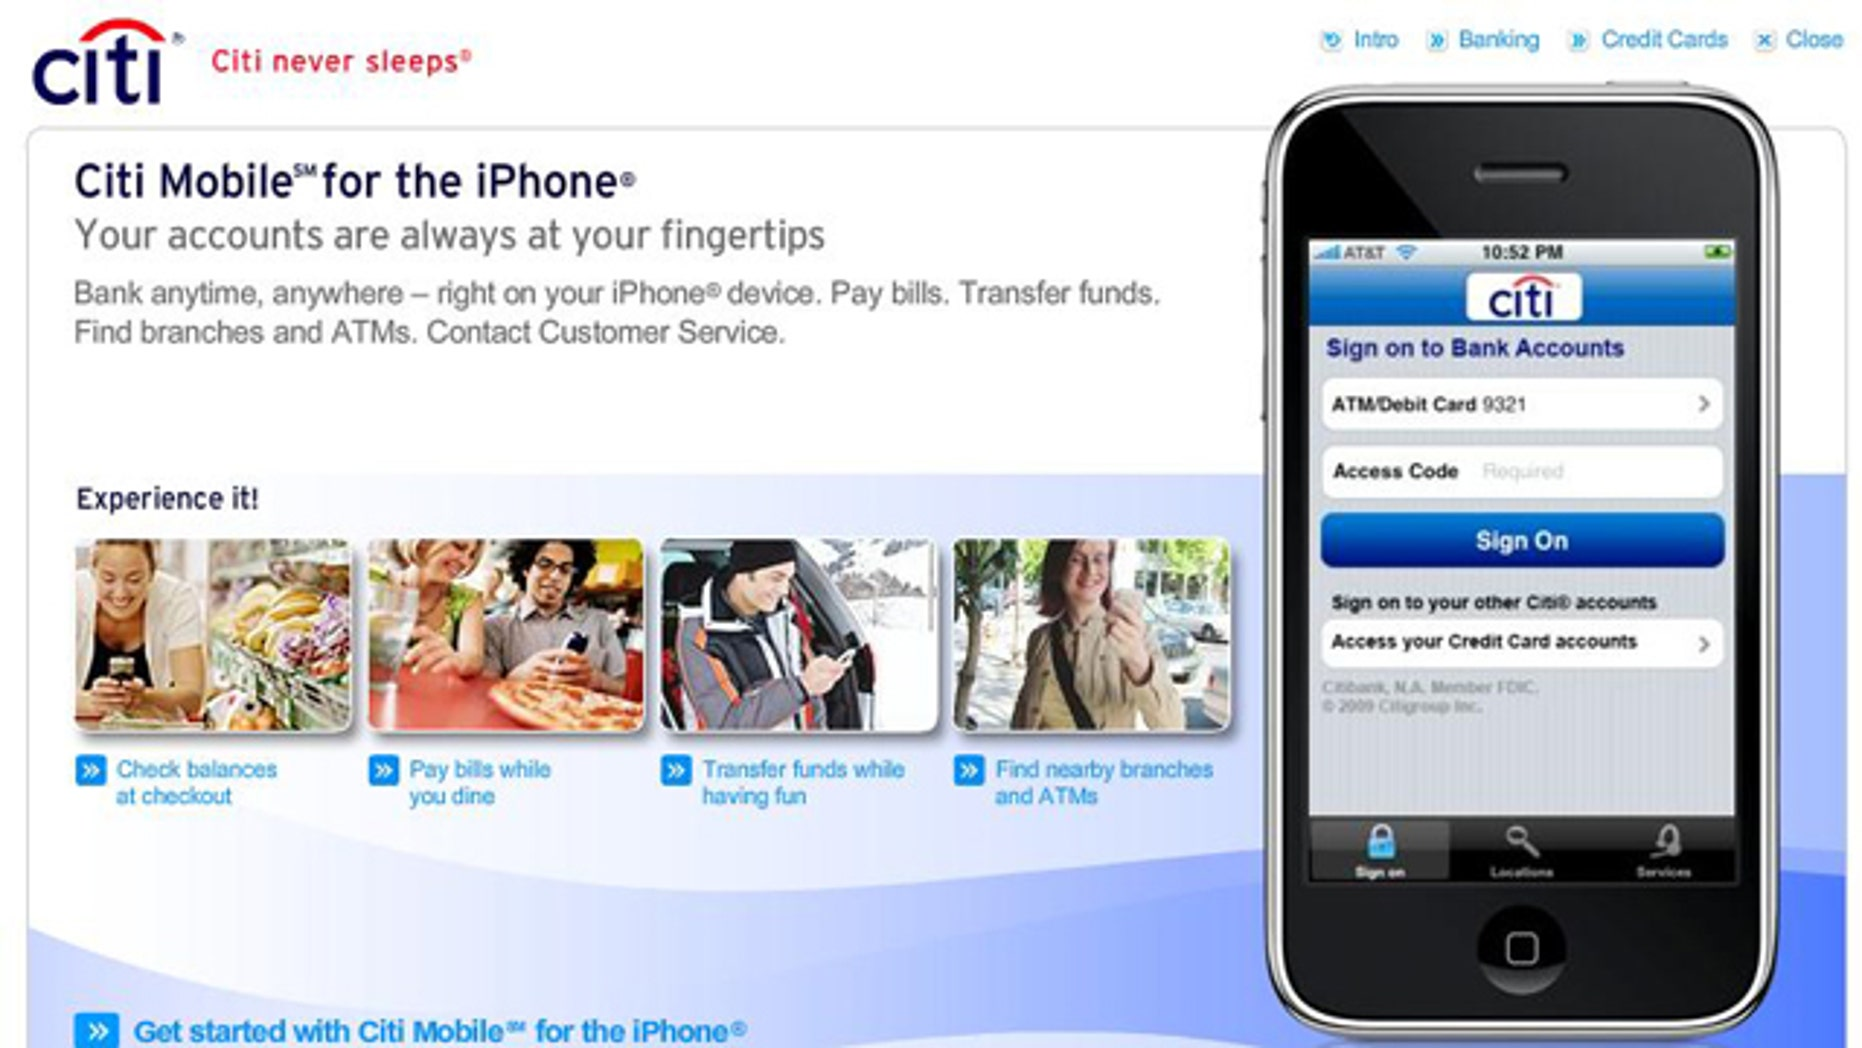 Citibank's iPhone app was accidentally storing user data, the company announced Monday.